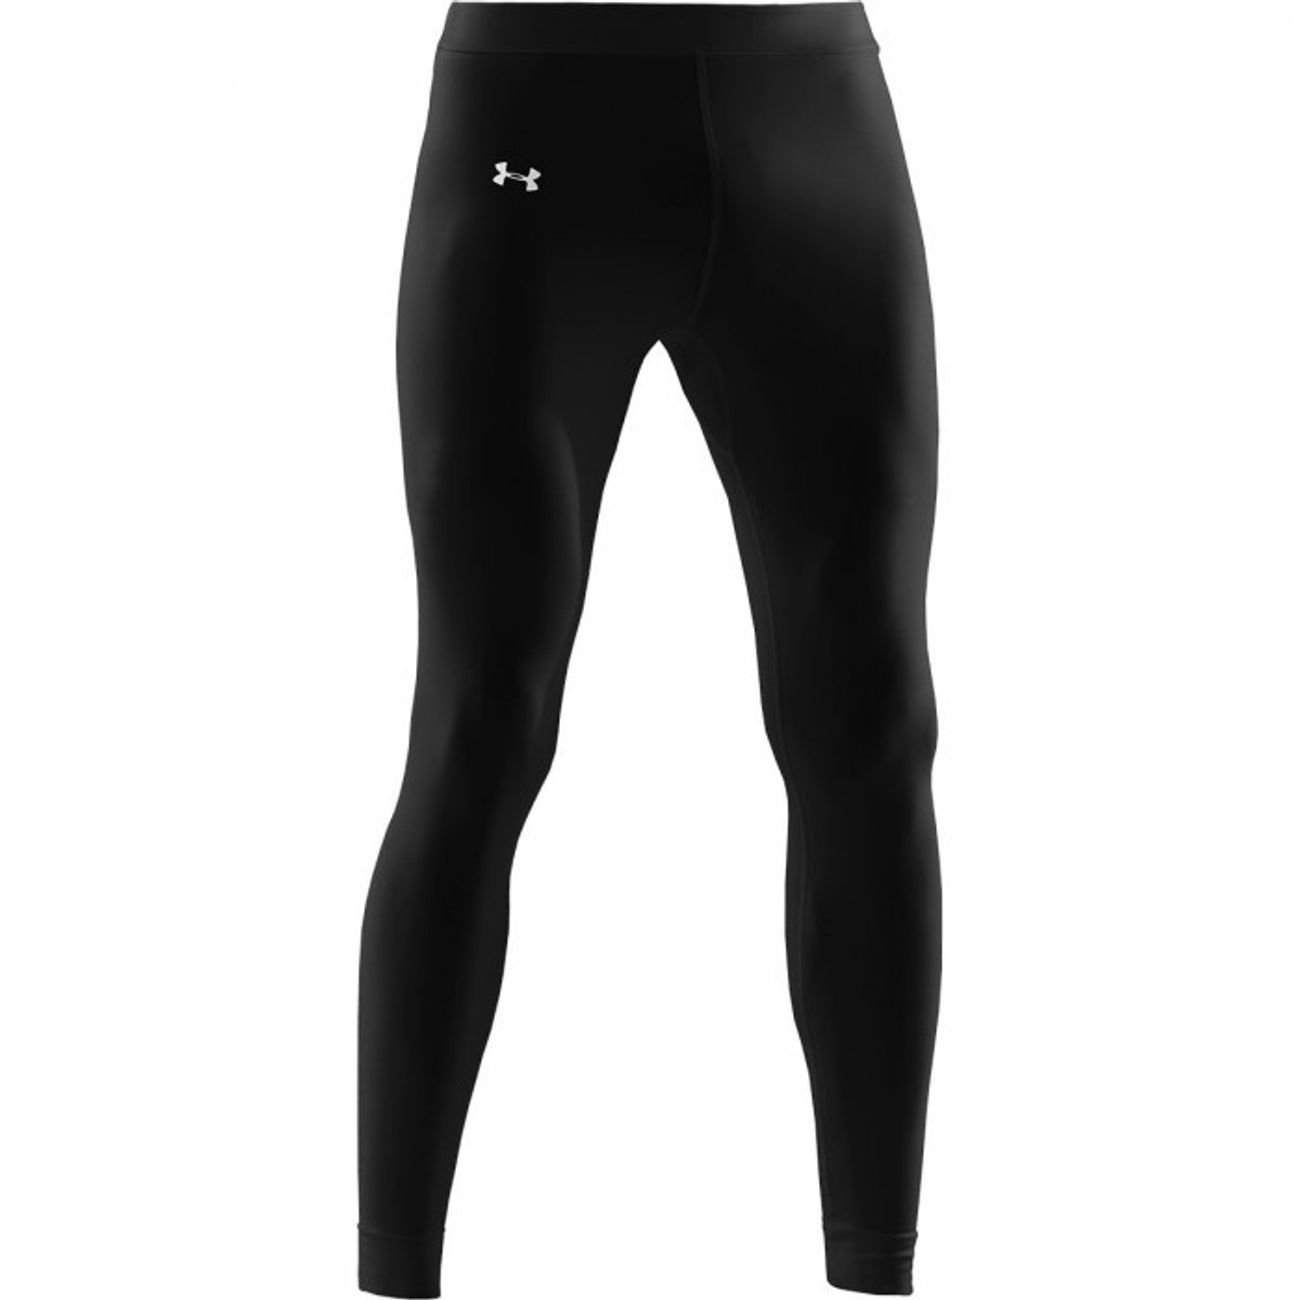 ac20a865a collant-de-compression-under-armour-coldgear-evo-legging-noir 1 v1.jpeg